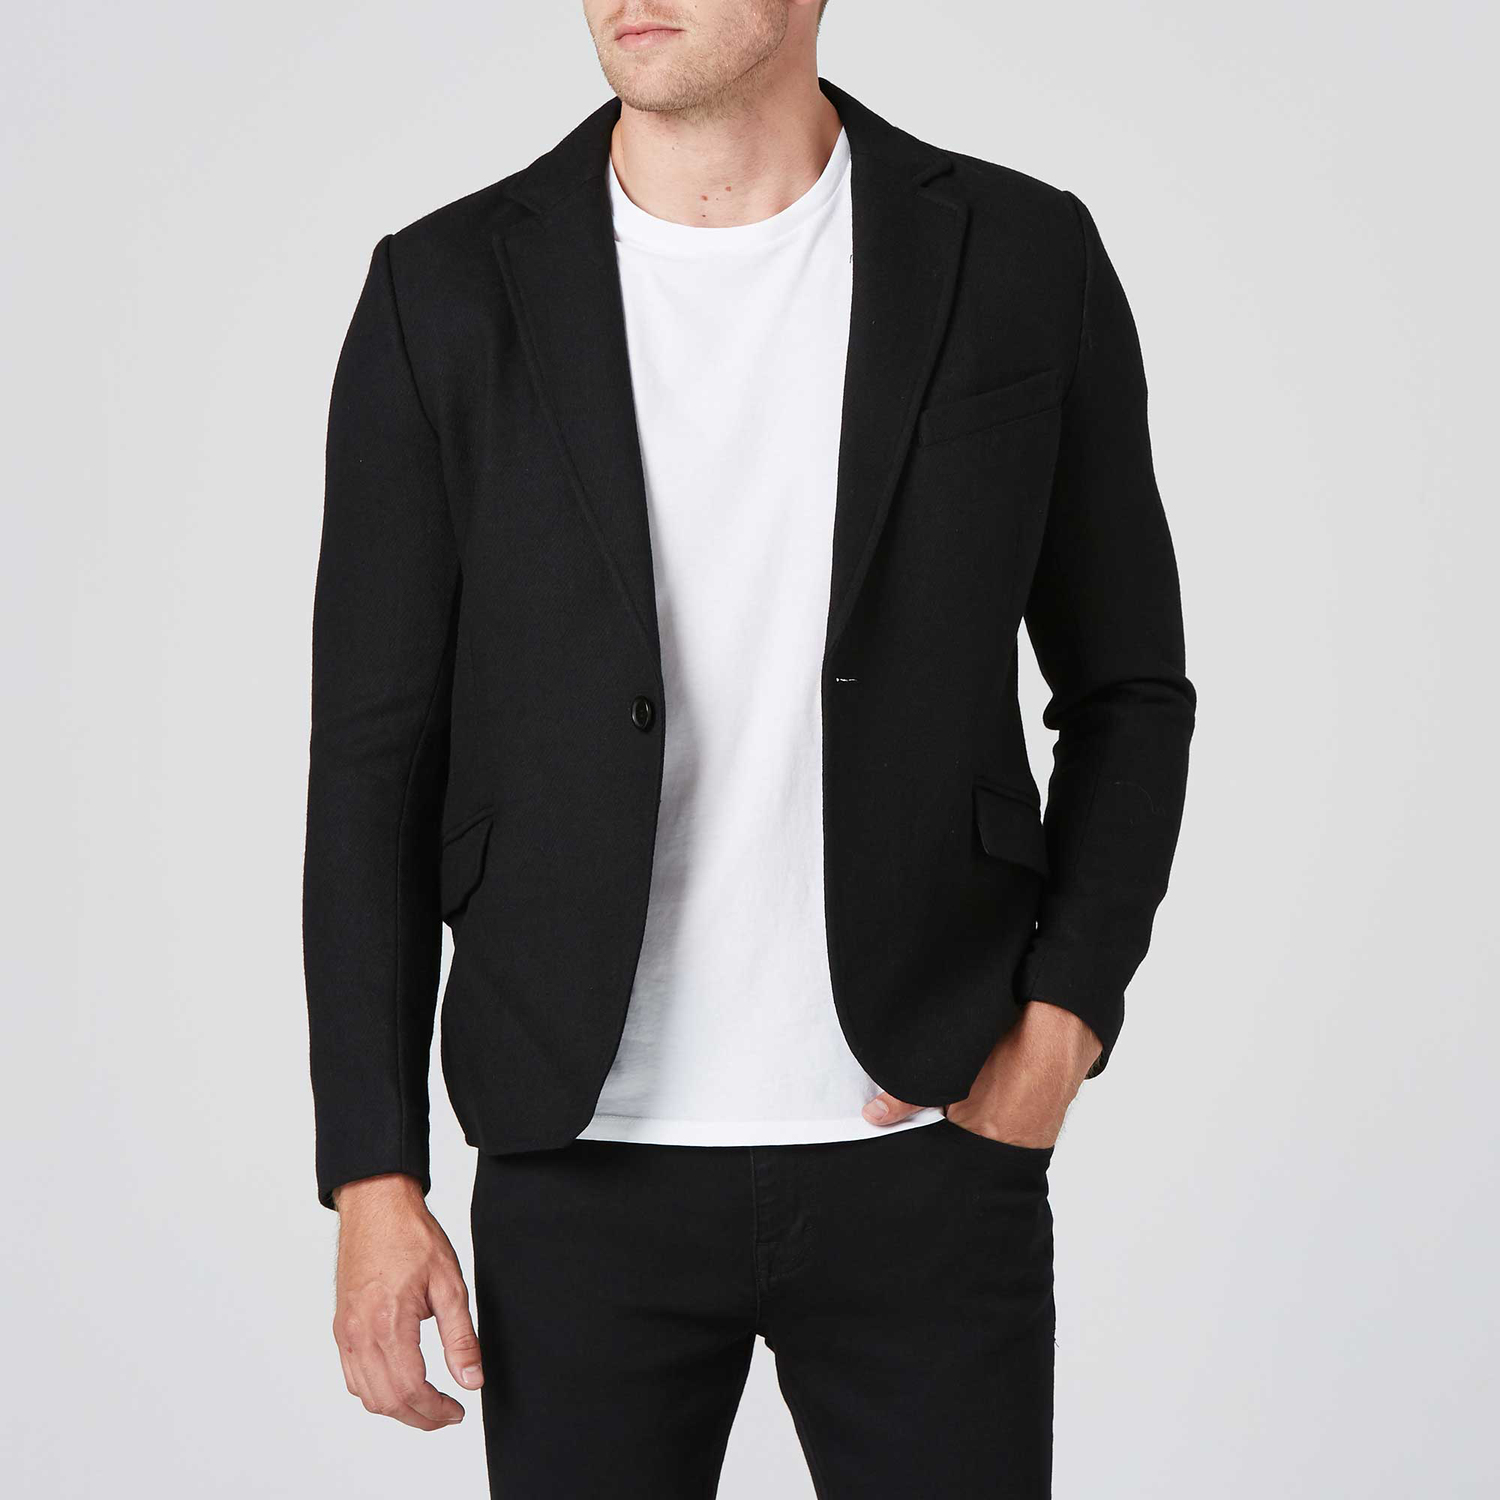 a7479662a443 Mens Slim Wool Blazer With Leather Collar In Black $125 | DSTLD